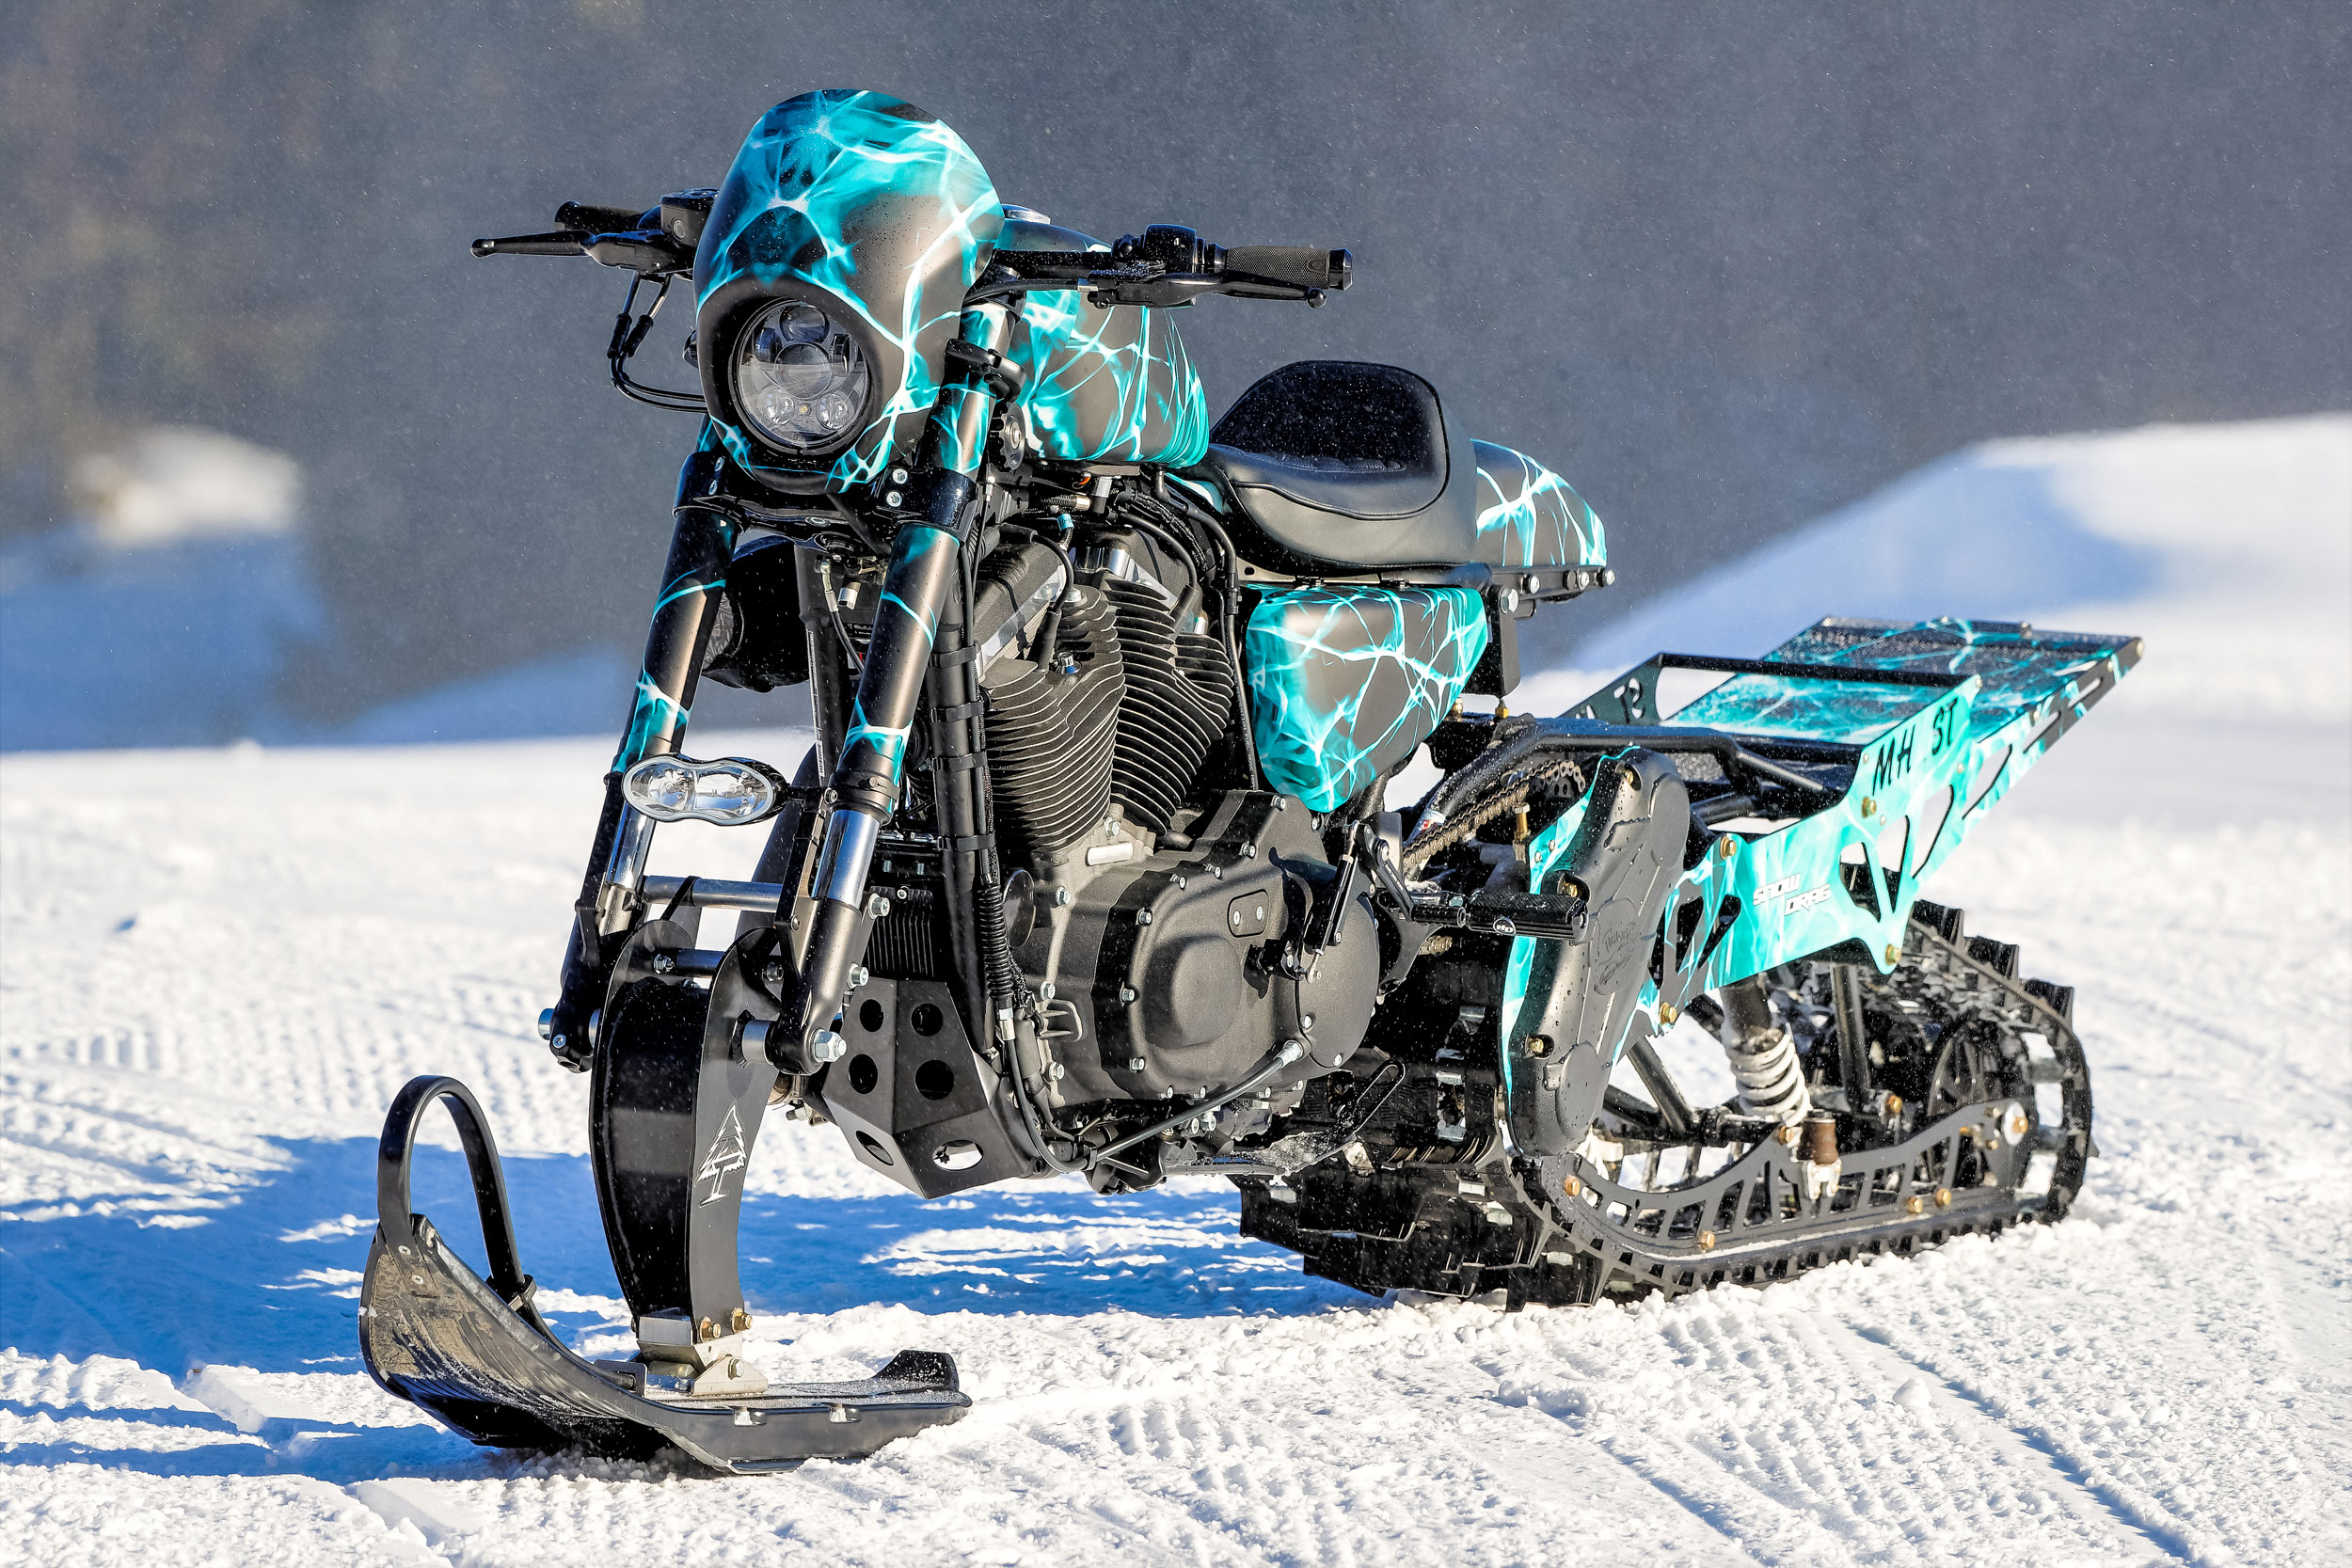 Harley Davidson Snow Drag Timbersled Converted Sportster